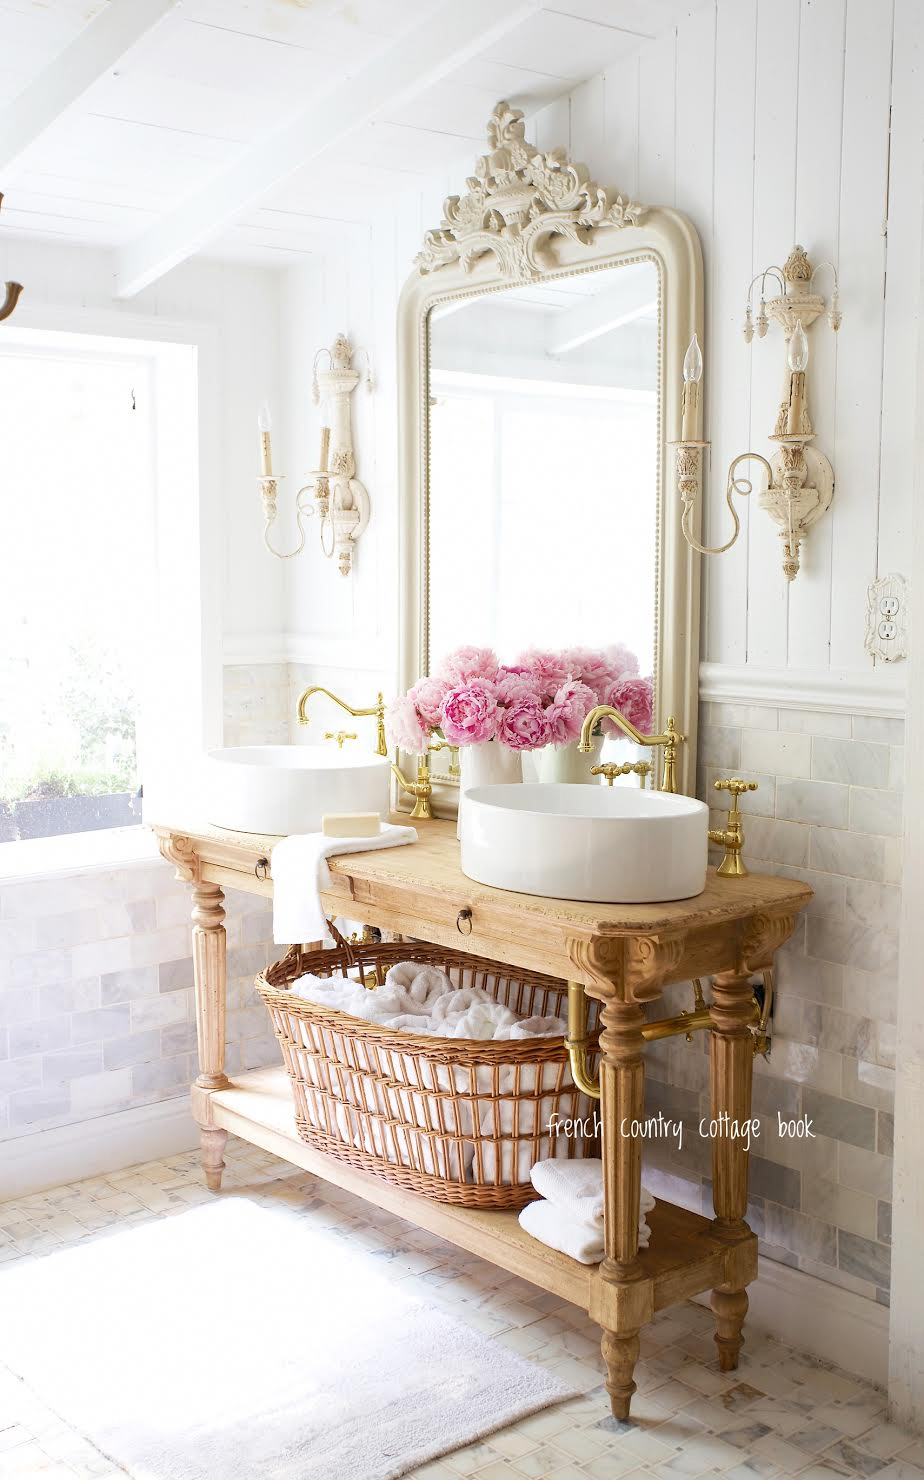 Simple Bathroom Refresh Ideas For Summer French Country Cottage Frenchdecorat In 2020 French Cottage Bathroom French Cottage Decor French Country Decorating Bedroom